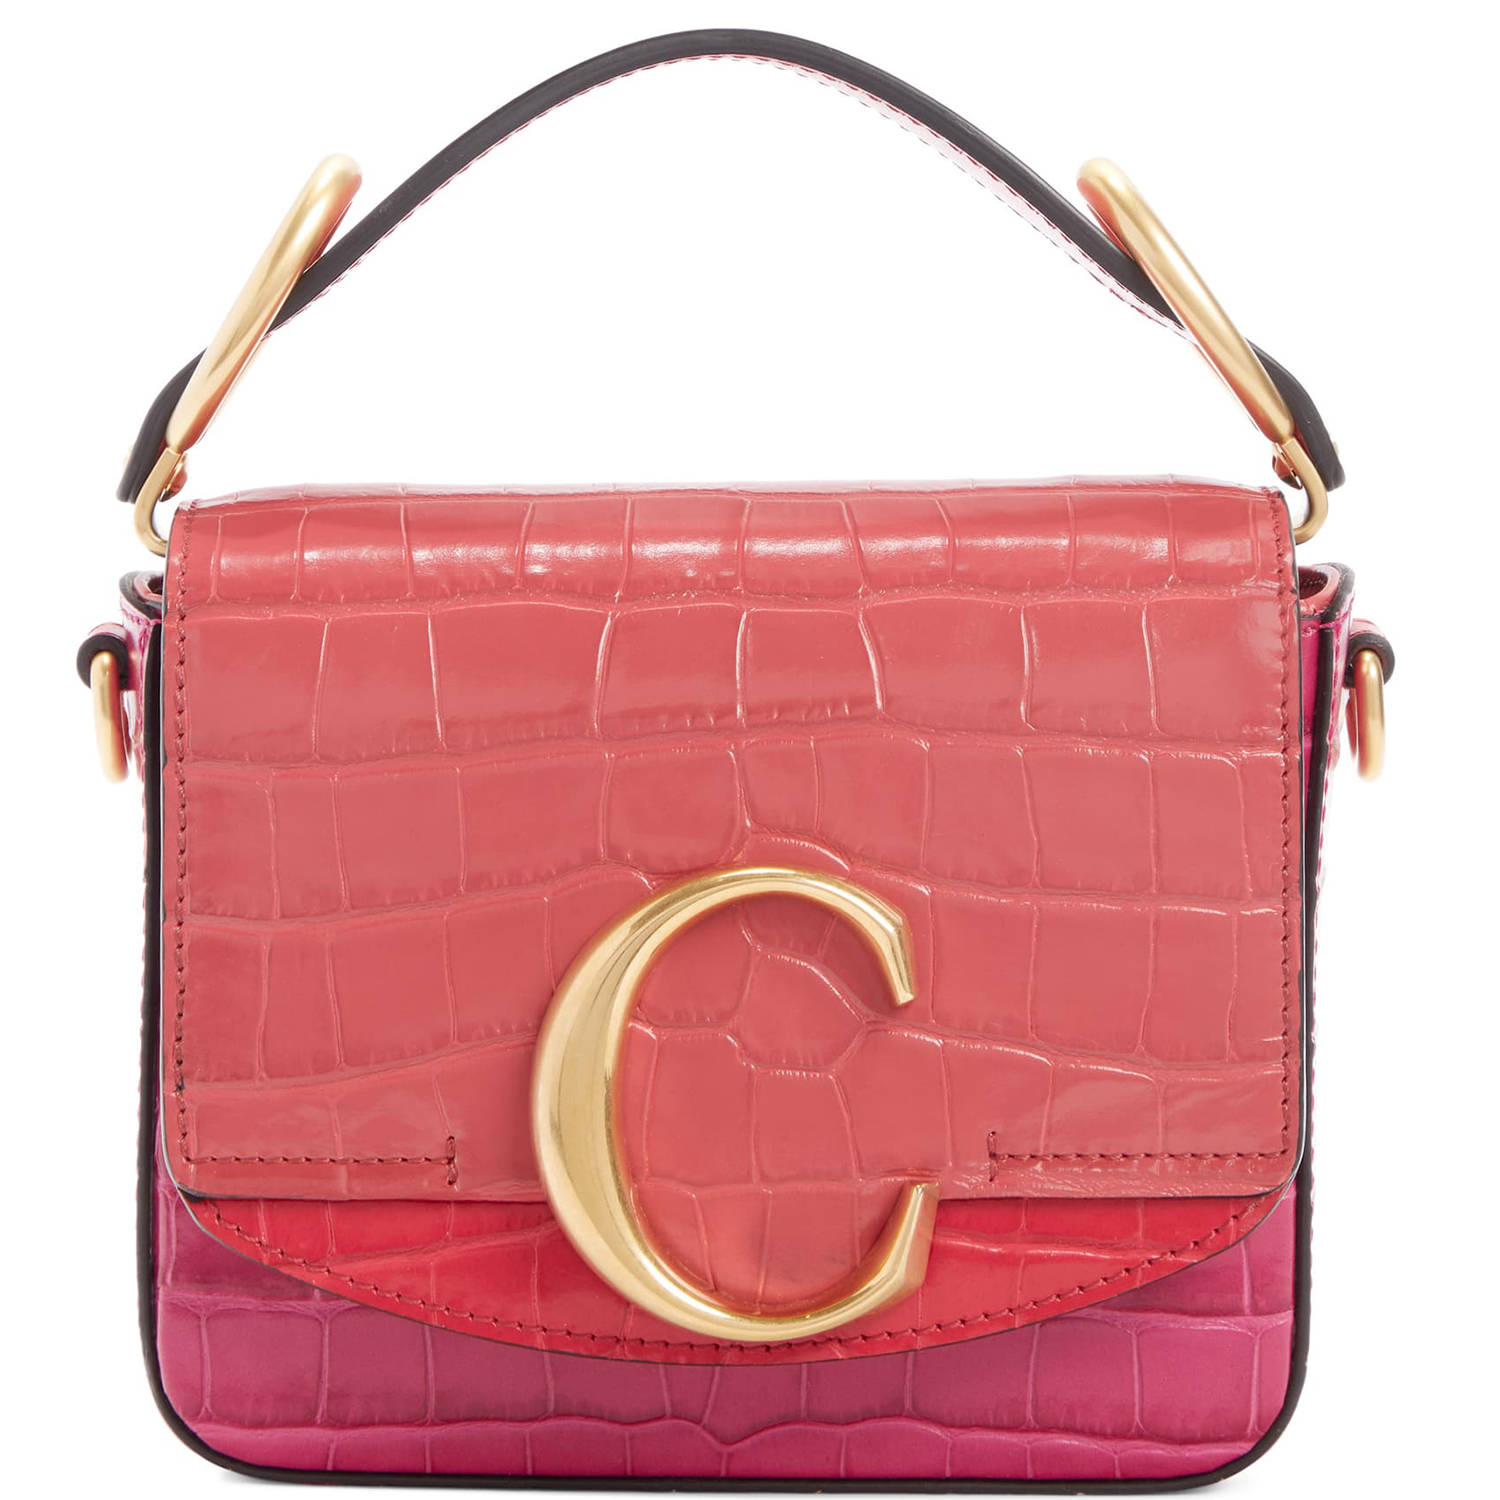 Chloé Mini C Tricolor Croc Embossed Leather Shoulder Bag